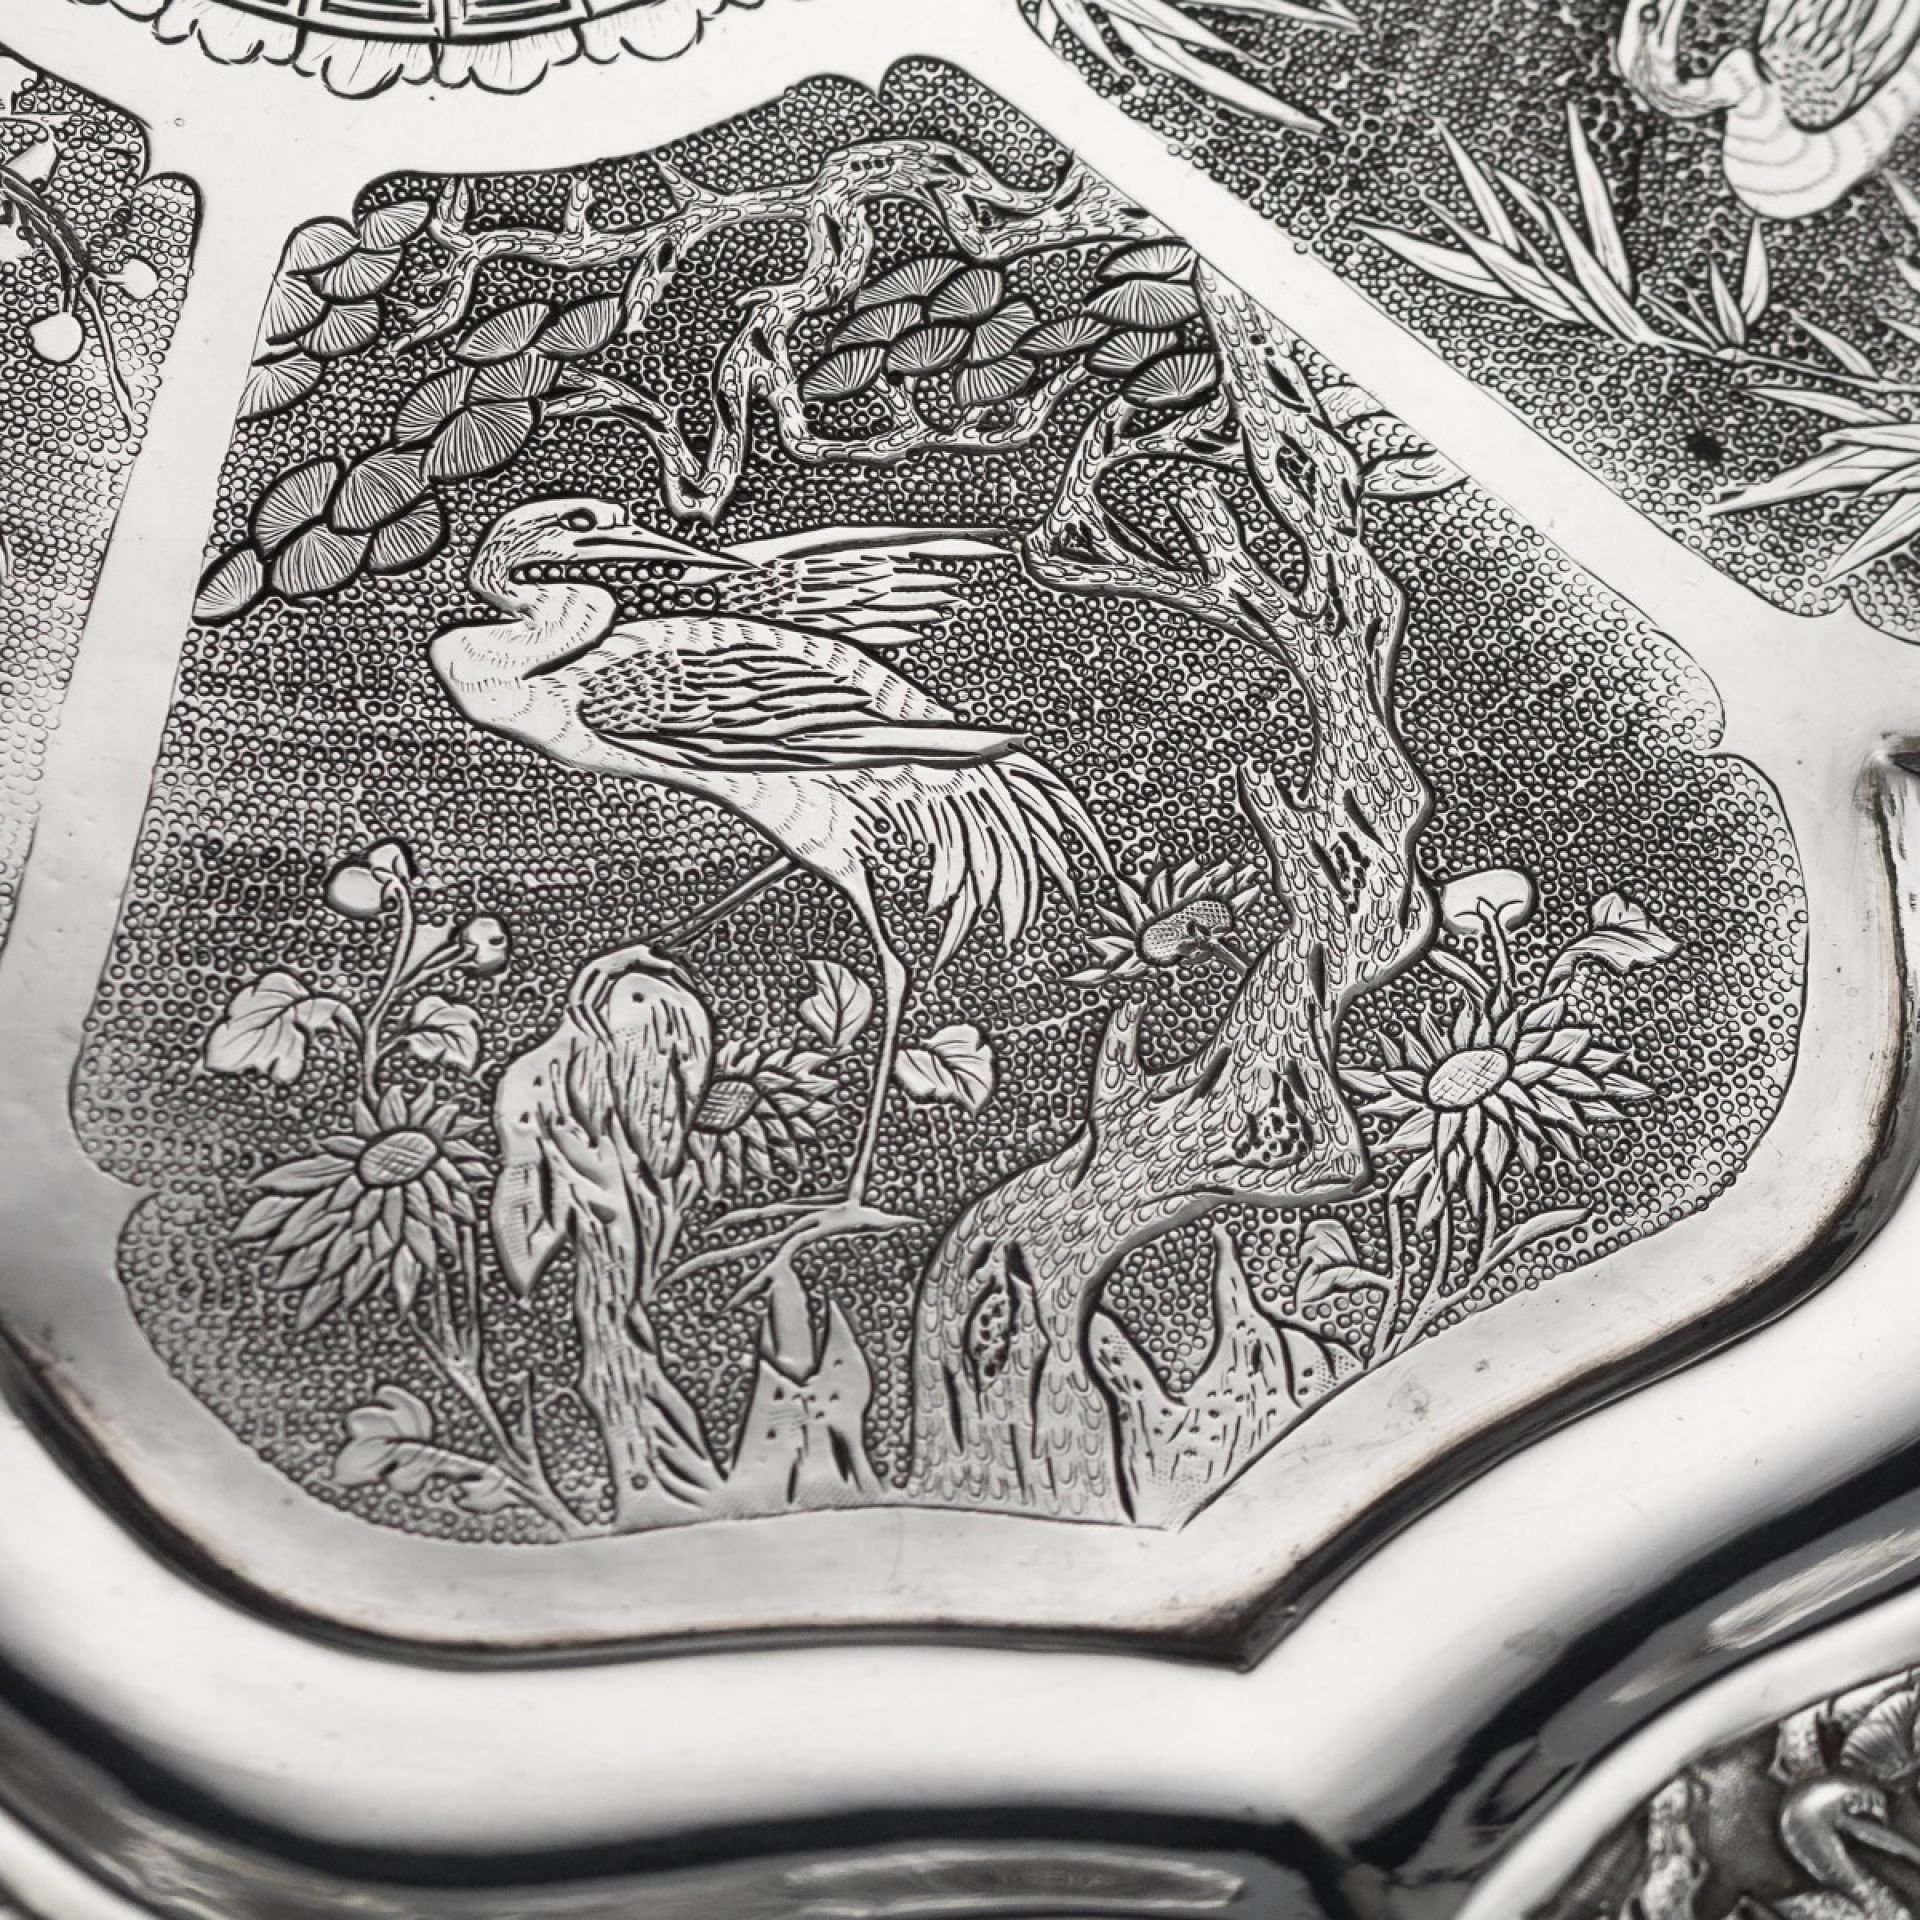 ANTIQUE 19thC CHINESE EXPORT SOLID SILVER SALVER, HOUCHEONG, CANTON c.1850